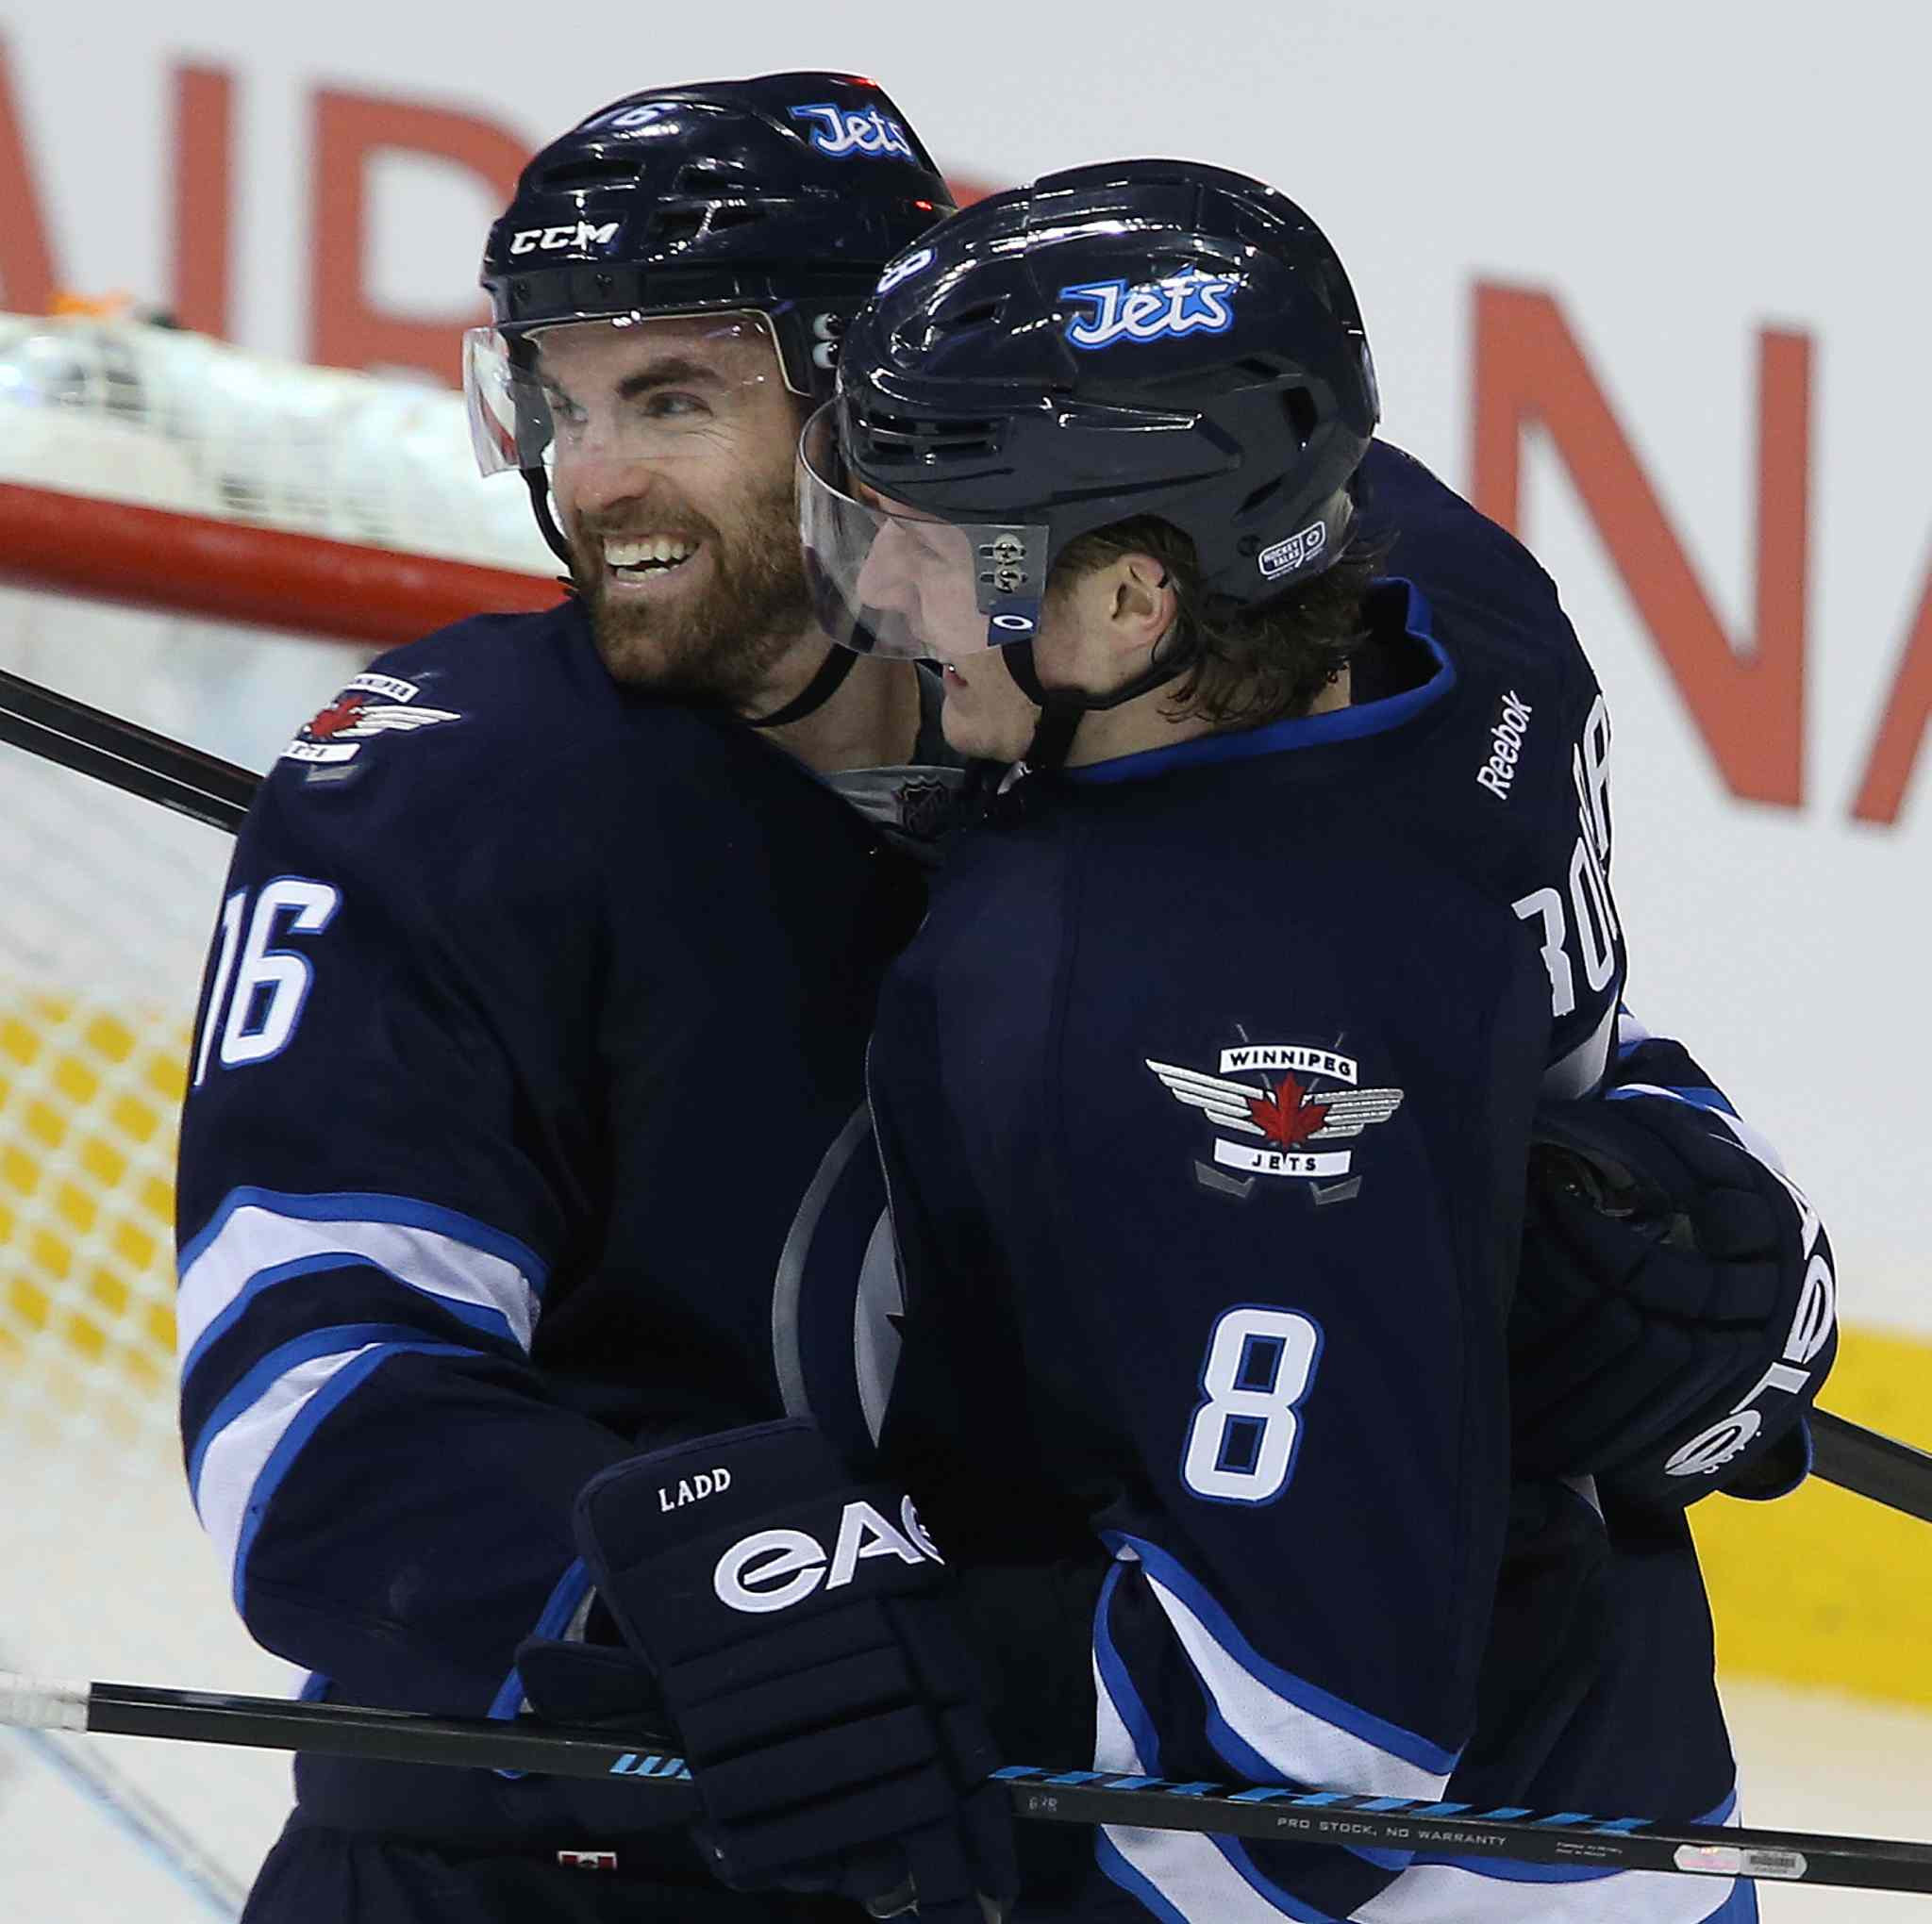 New Jets: Andrew Ladd (16) and Jacob Trouba (8) at the MTS Centre in January 2014.  TREVOR HAGAN / WINNIPEG FREE PRESS